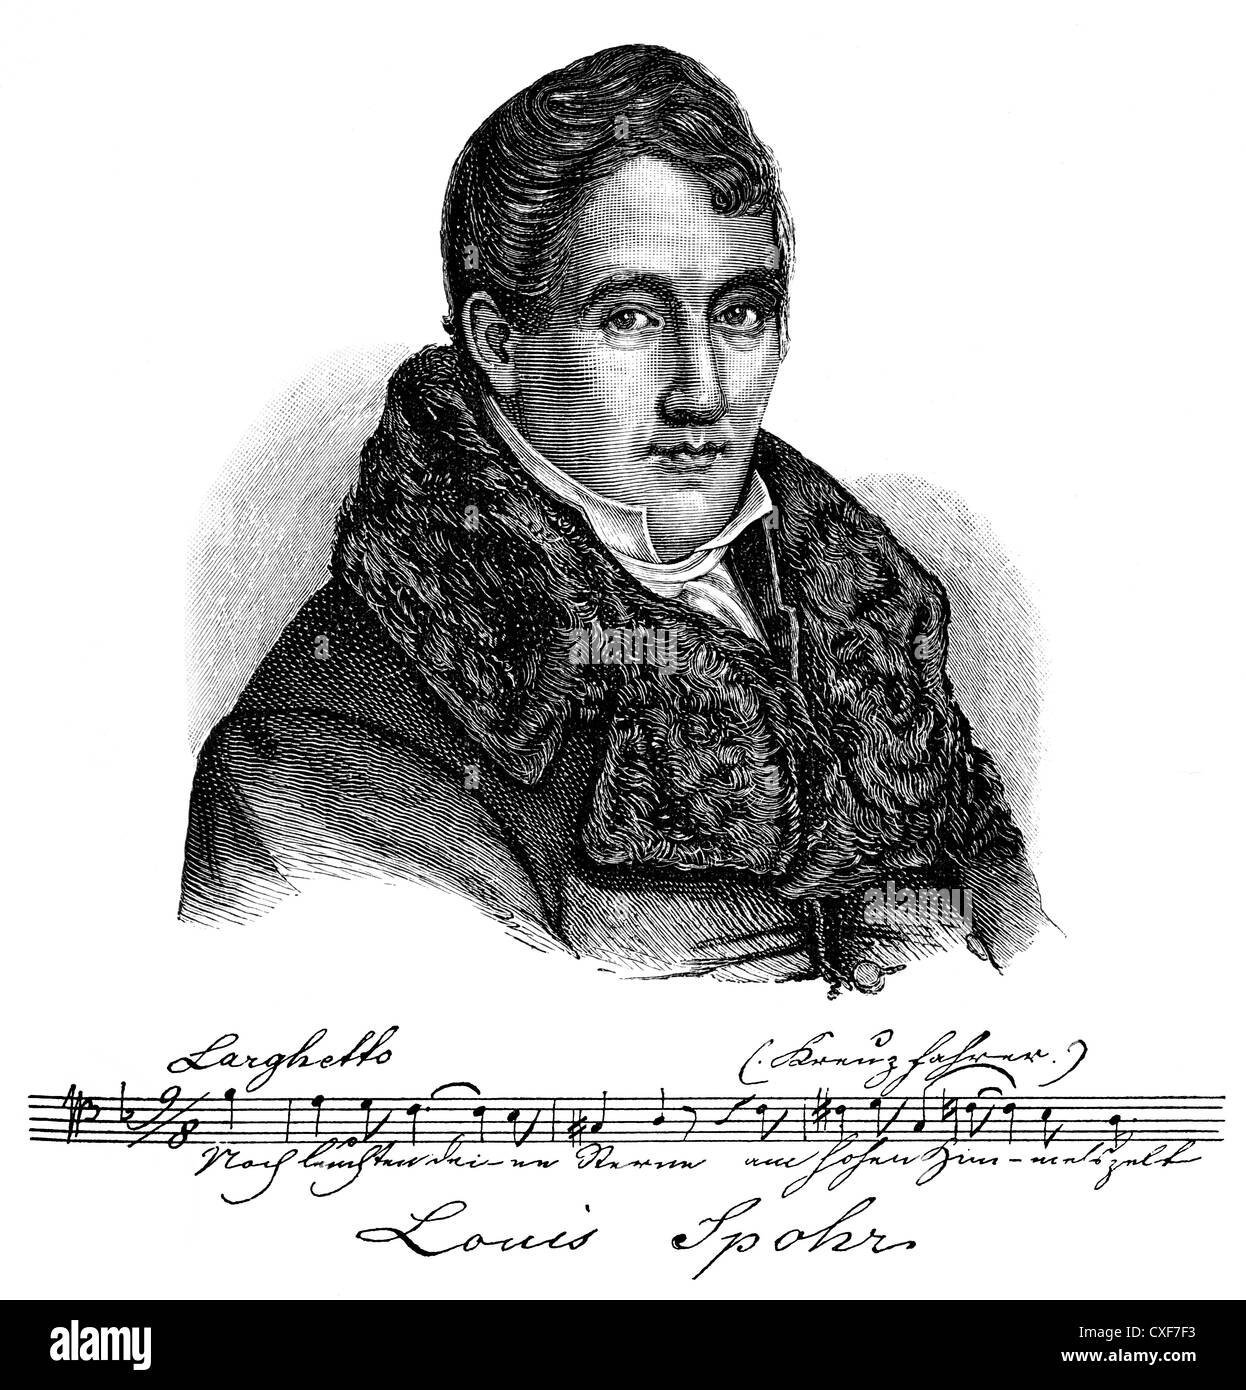 Louis or Ludwig Spohr, 1784 - 1859, a German composer, conductor, violinist and pedagogue, - Stock Image